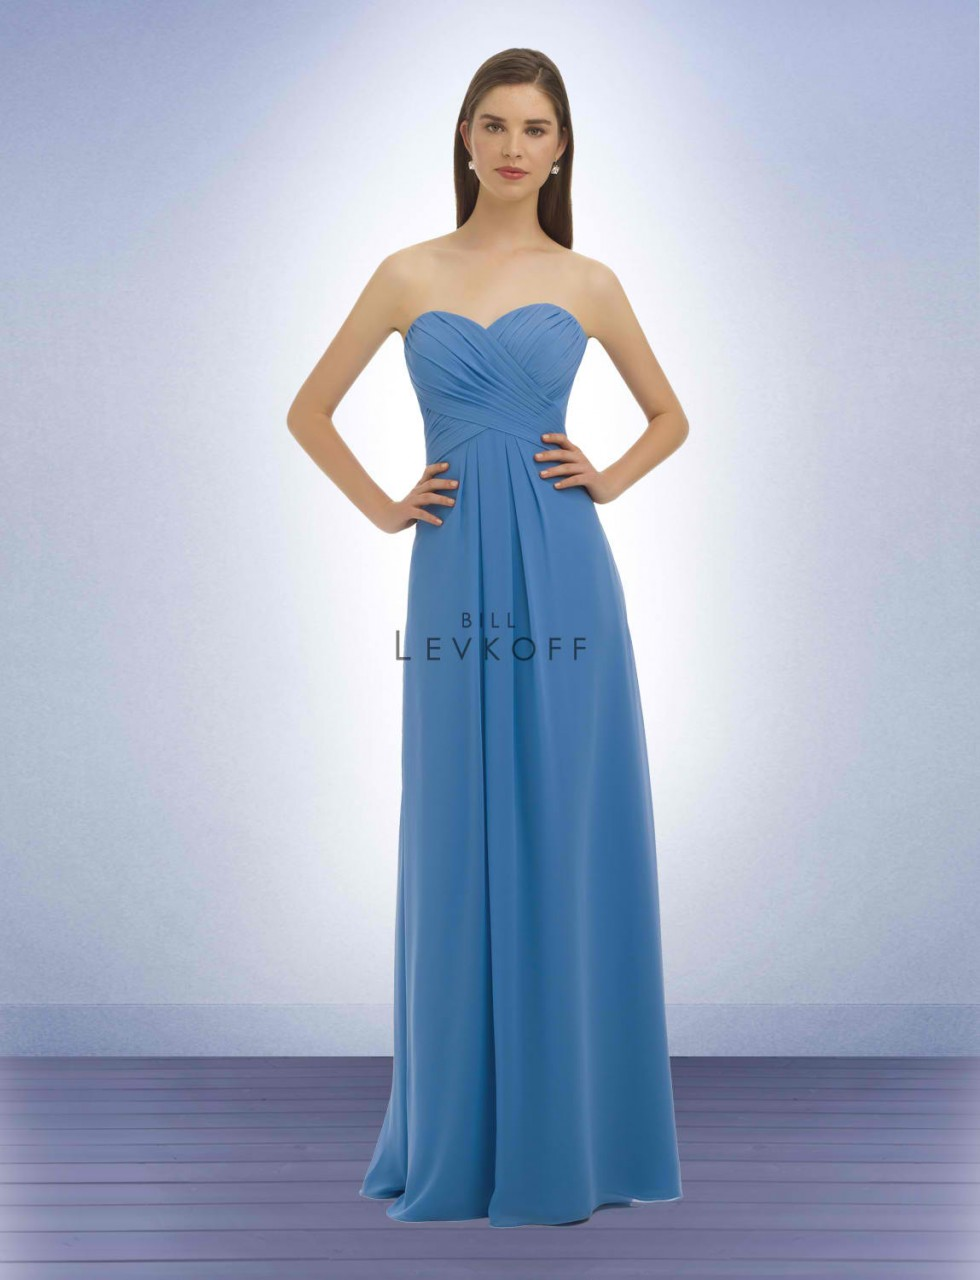 Bill Levkoff Bridesmaid Dress Style 329 - Chiffon Dress